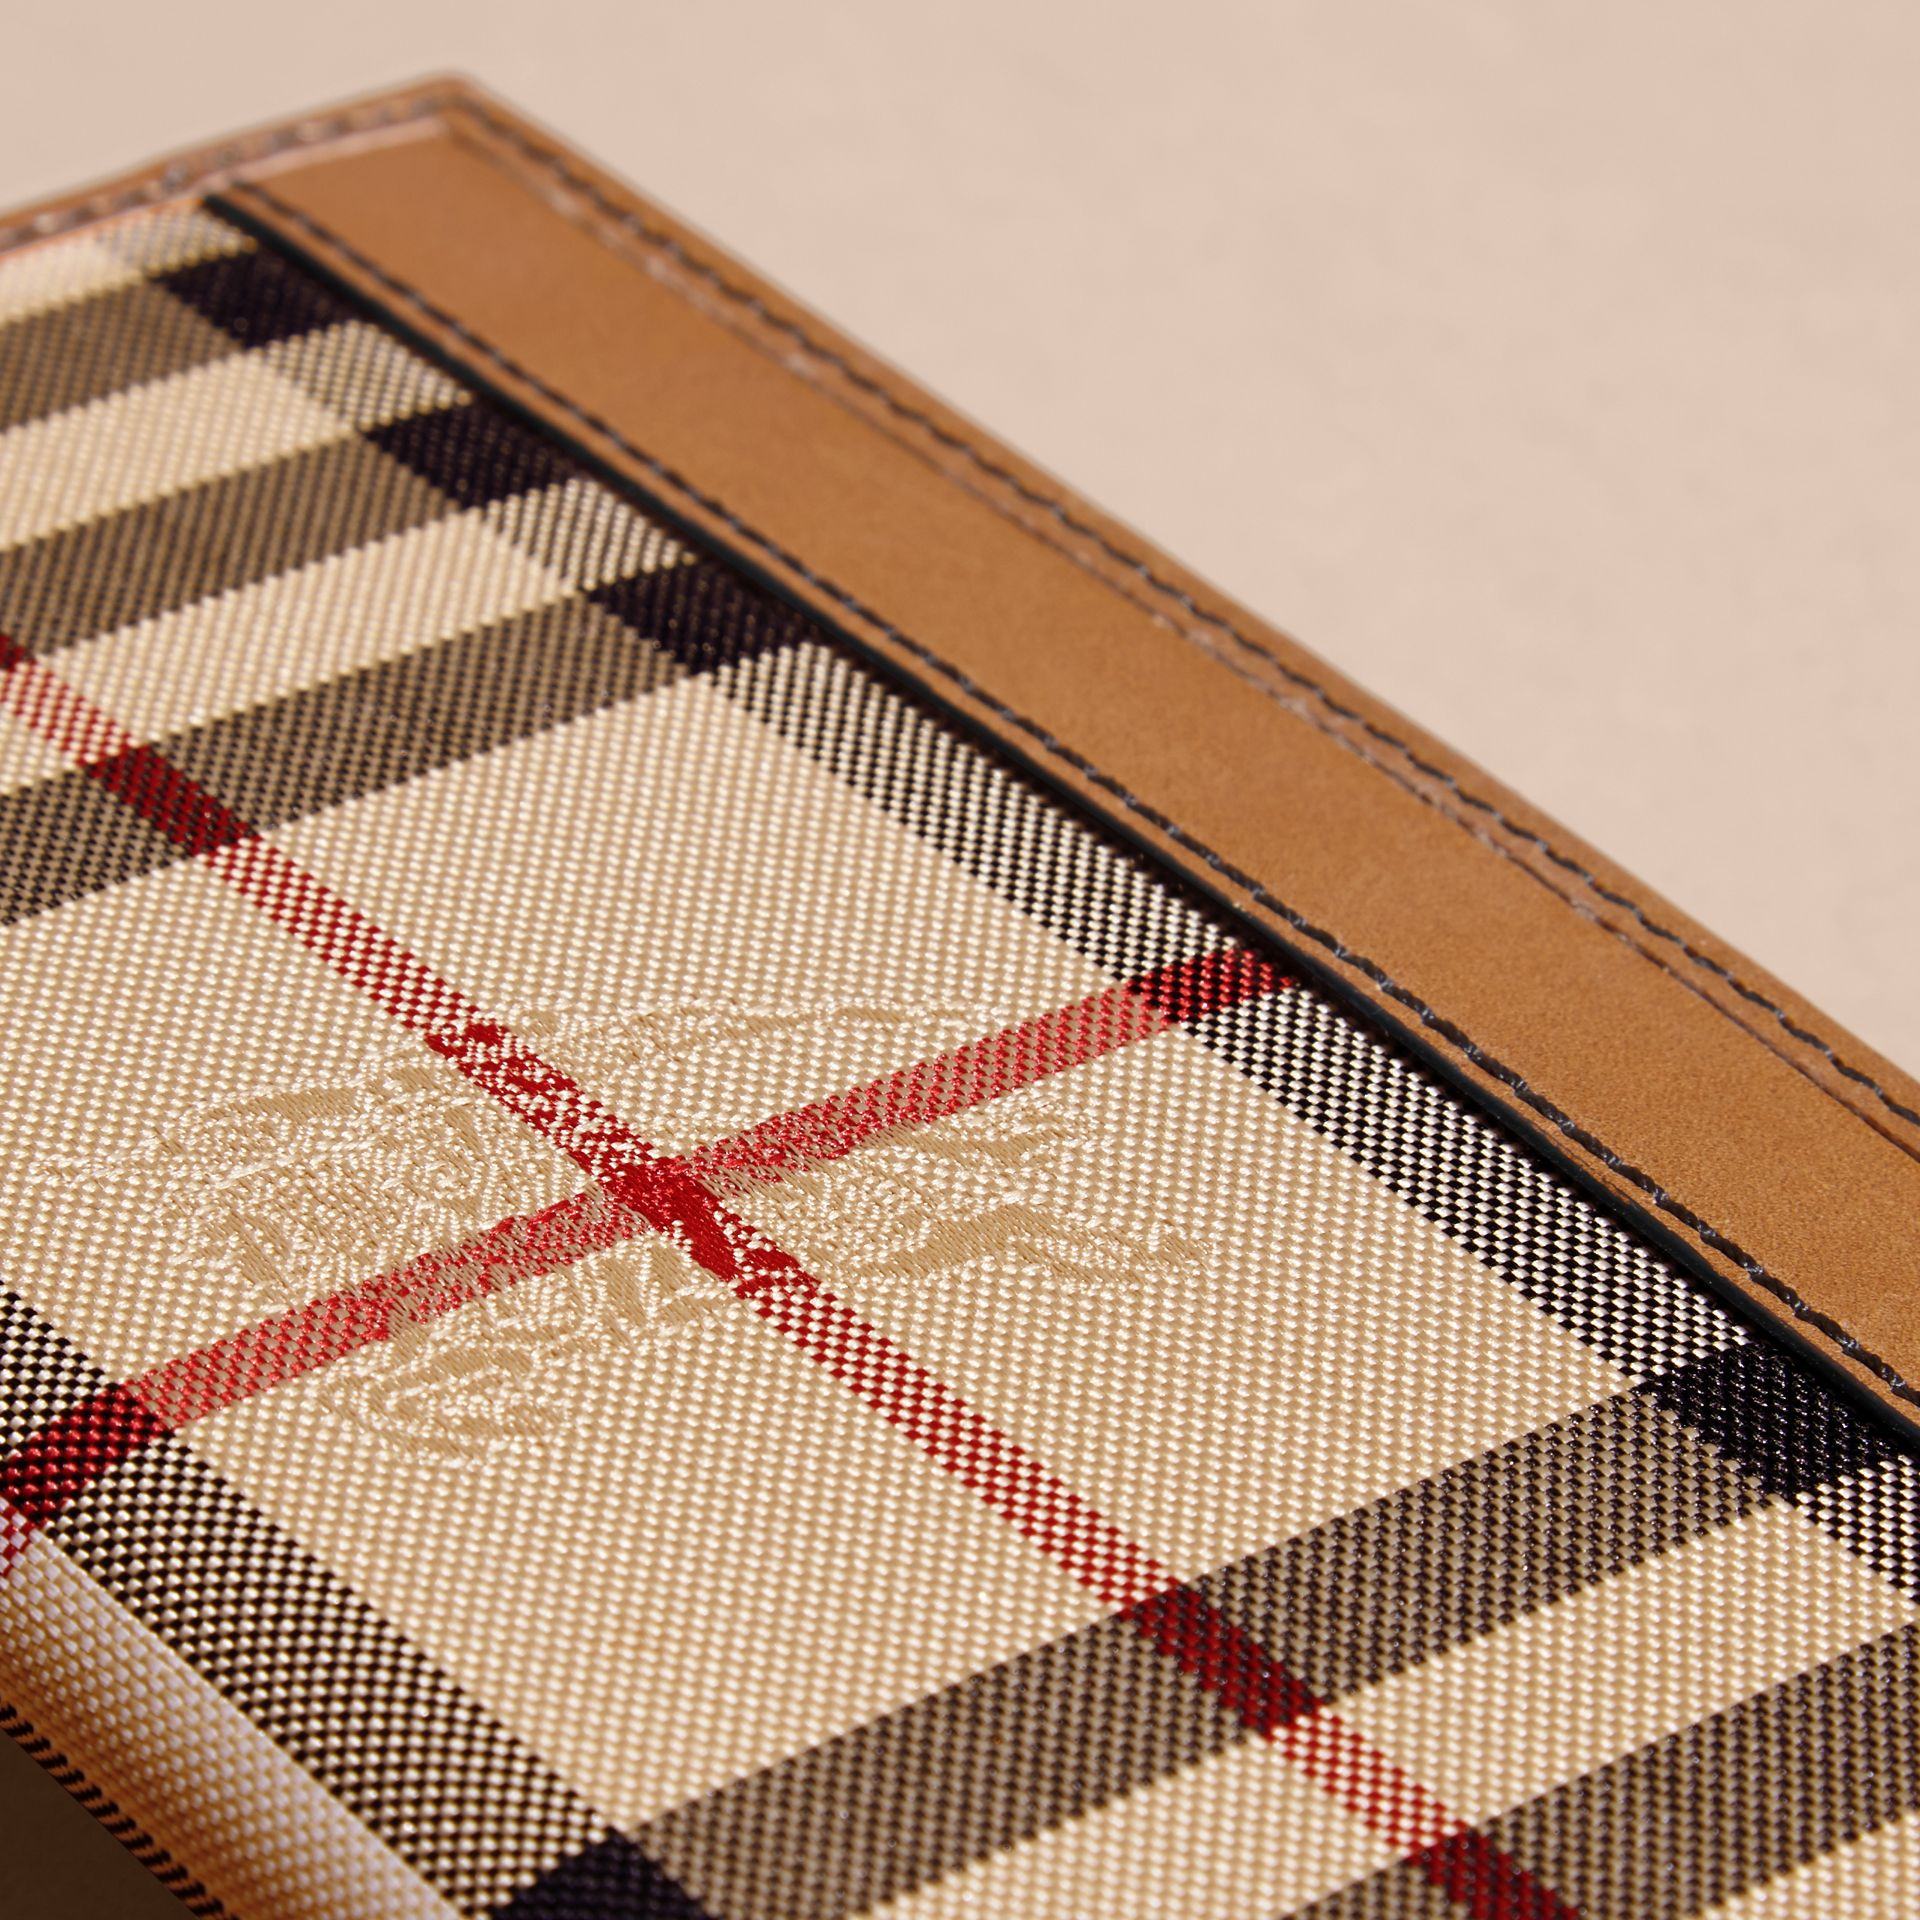 Small Horseferry Check Currency Wallet in Tan - Men | Burberry United Kingdom - gallery image 1